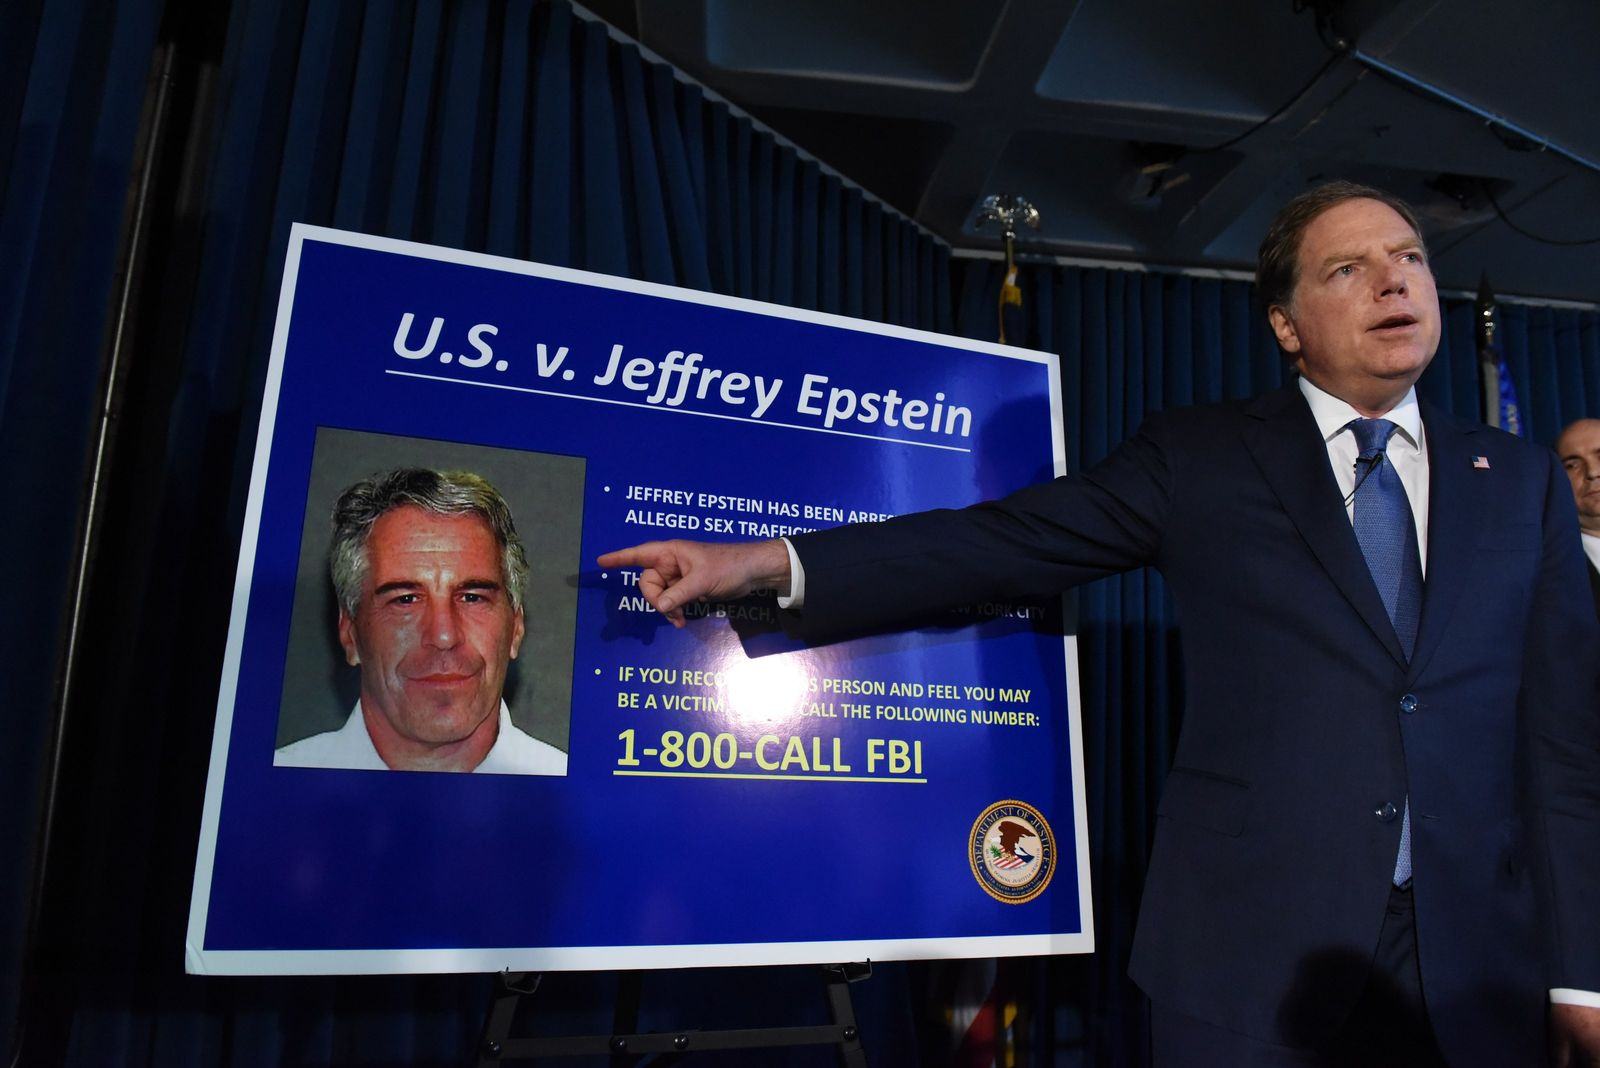 US-JEFFREY-EPSTEIN-APPEARS-IN-MANHATTAN-FEDERAL-COURT-ON-SEX-TRA